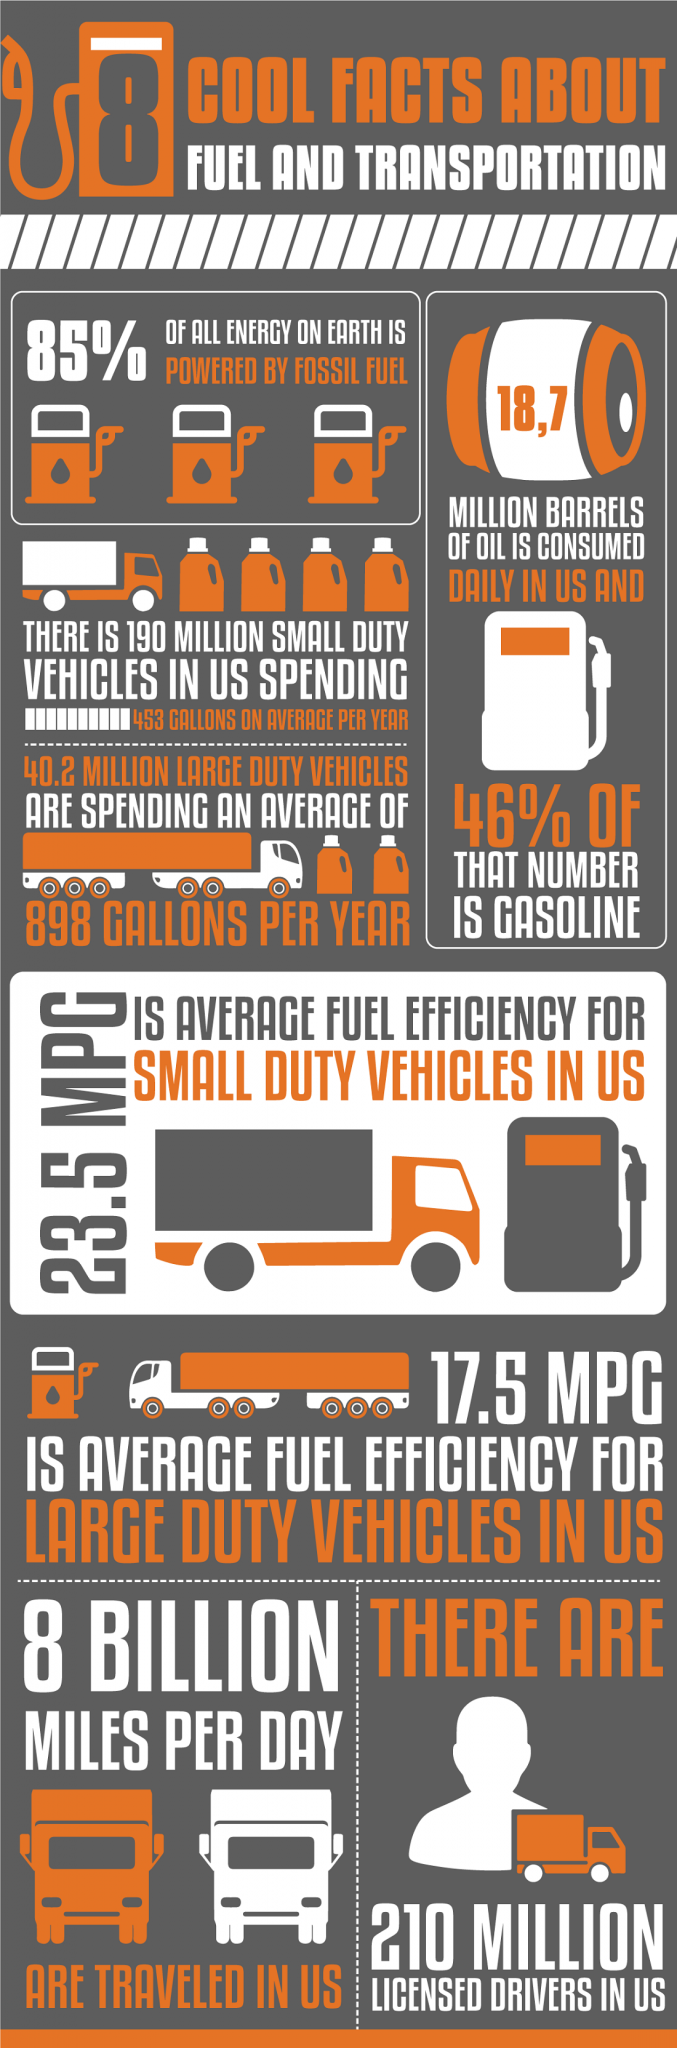 8-cool-facts-about-fuel-and-transportation